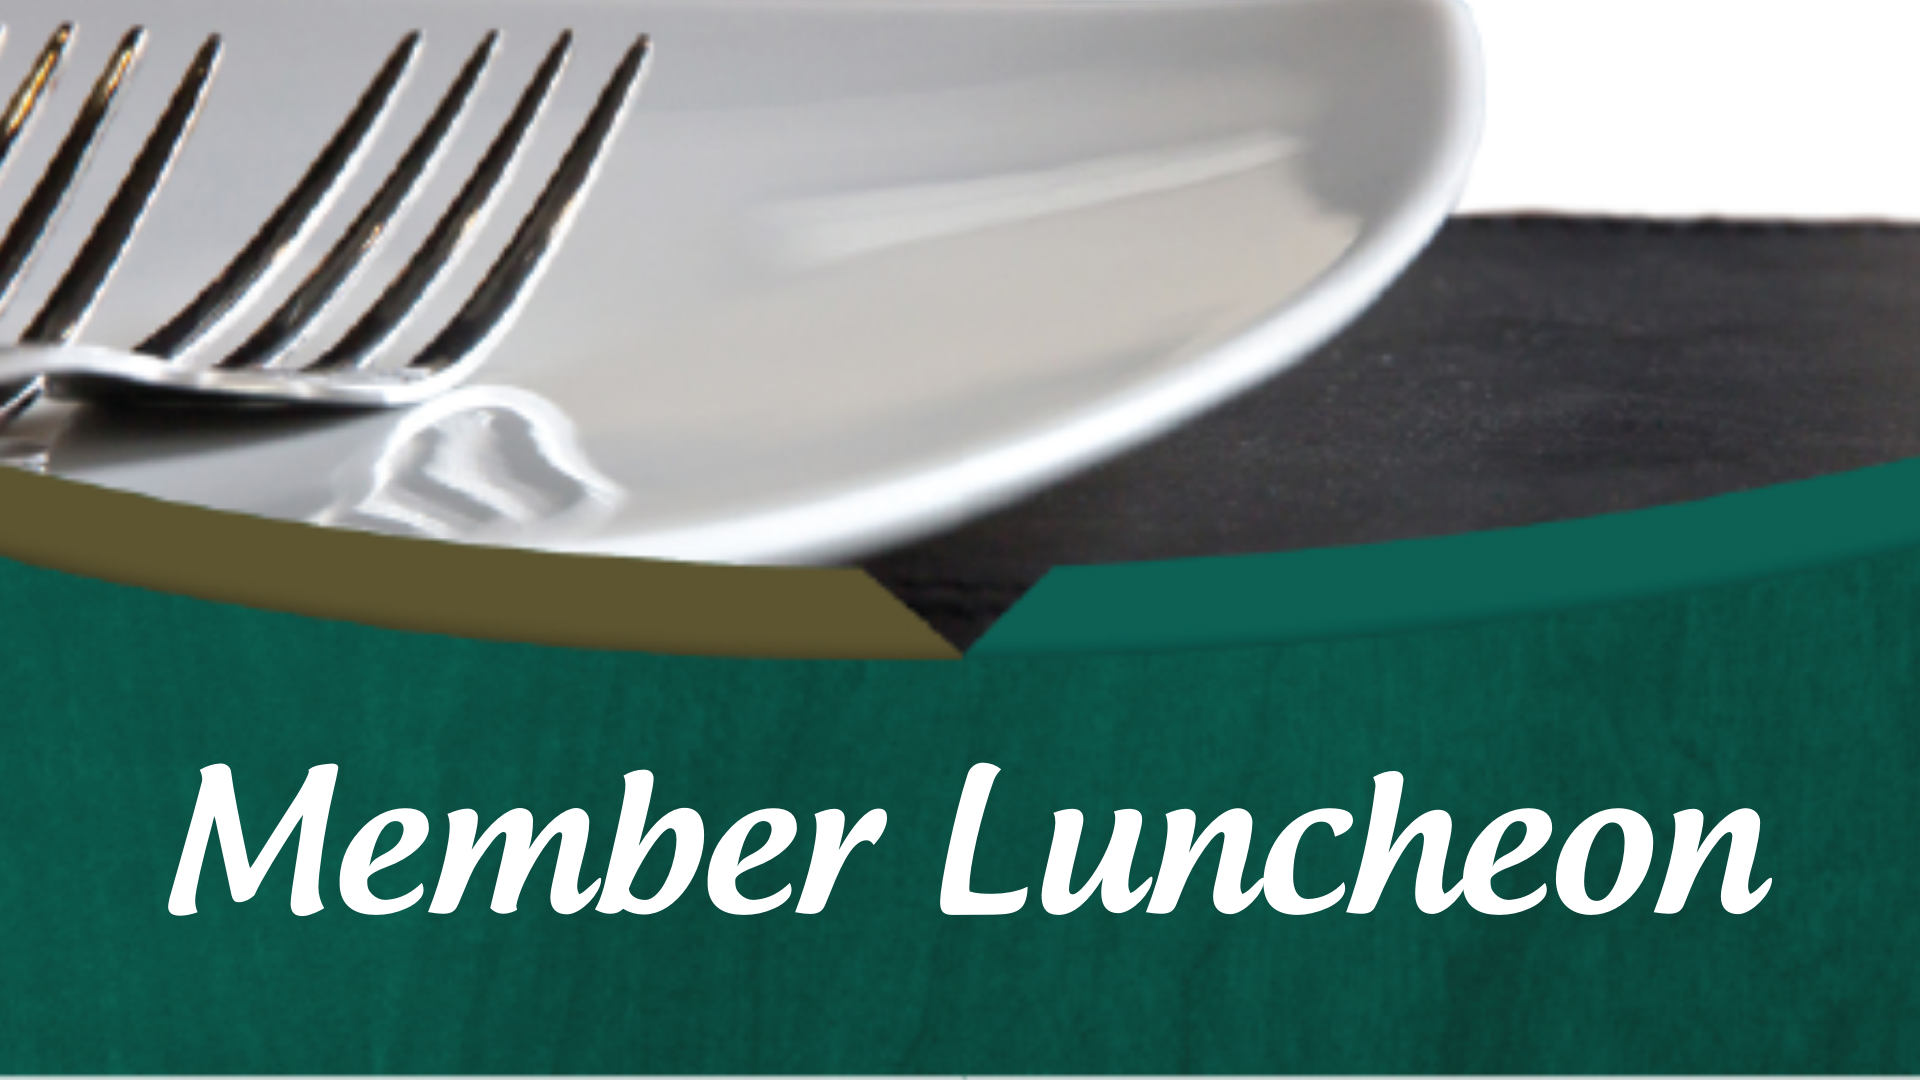 Chamber-Luncheon-FB-Cover.png